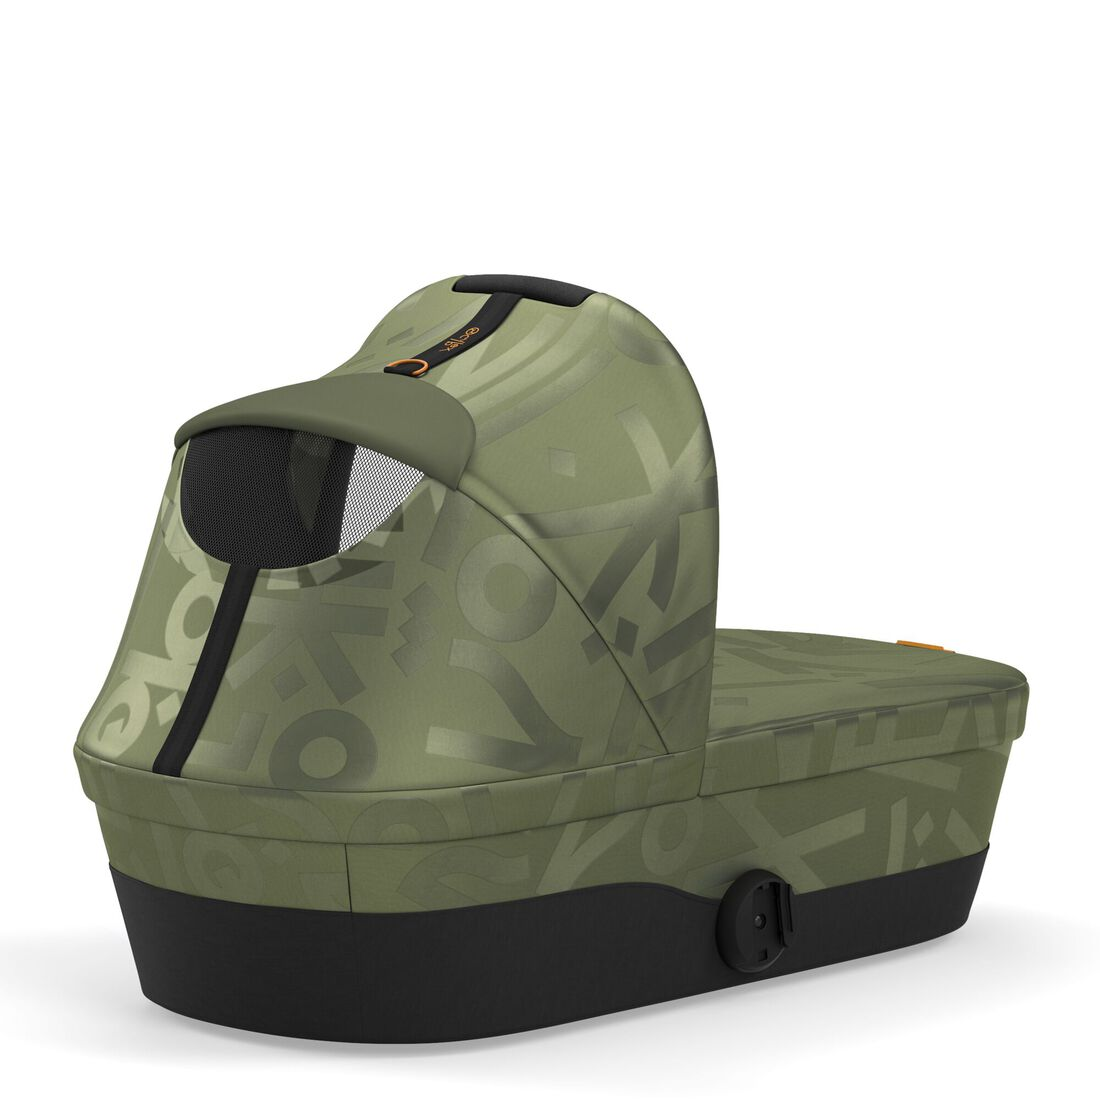 CYBEX Melio Cot - Olive Green in Olive Green large Bild 5